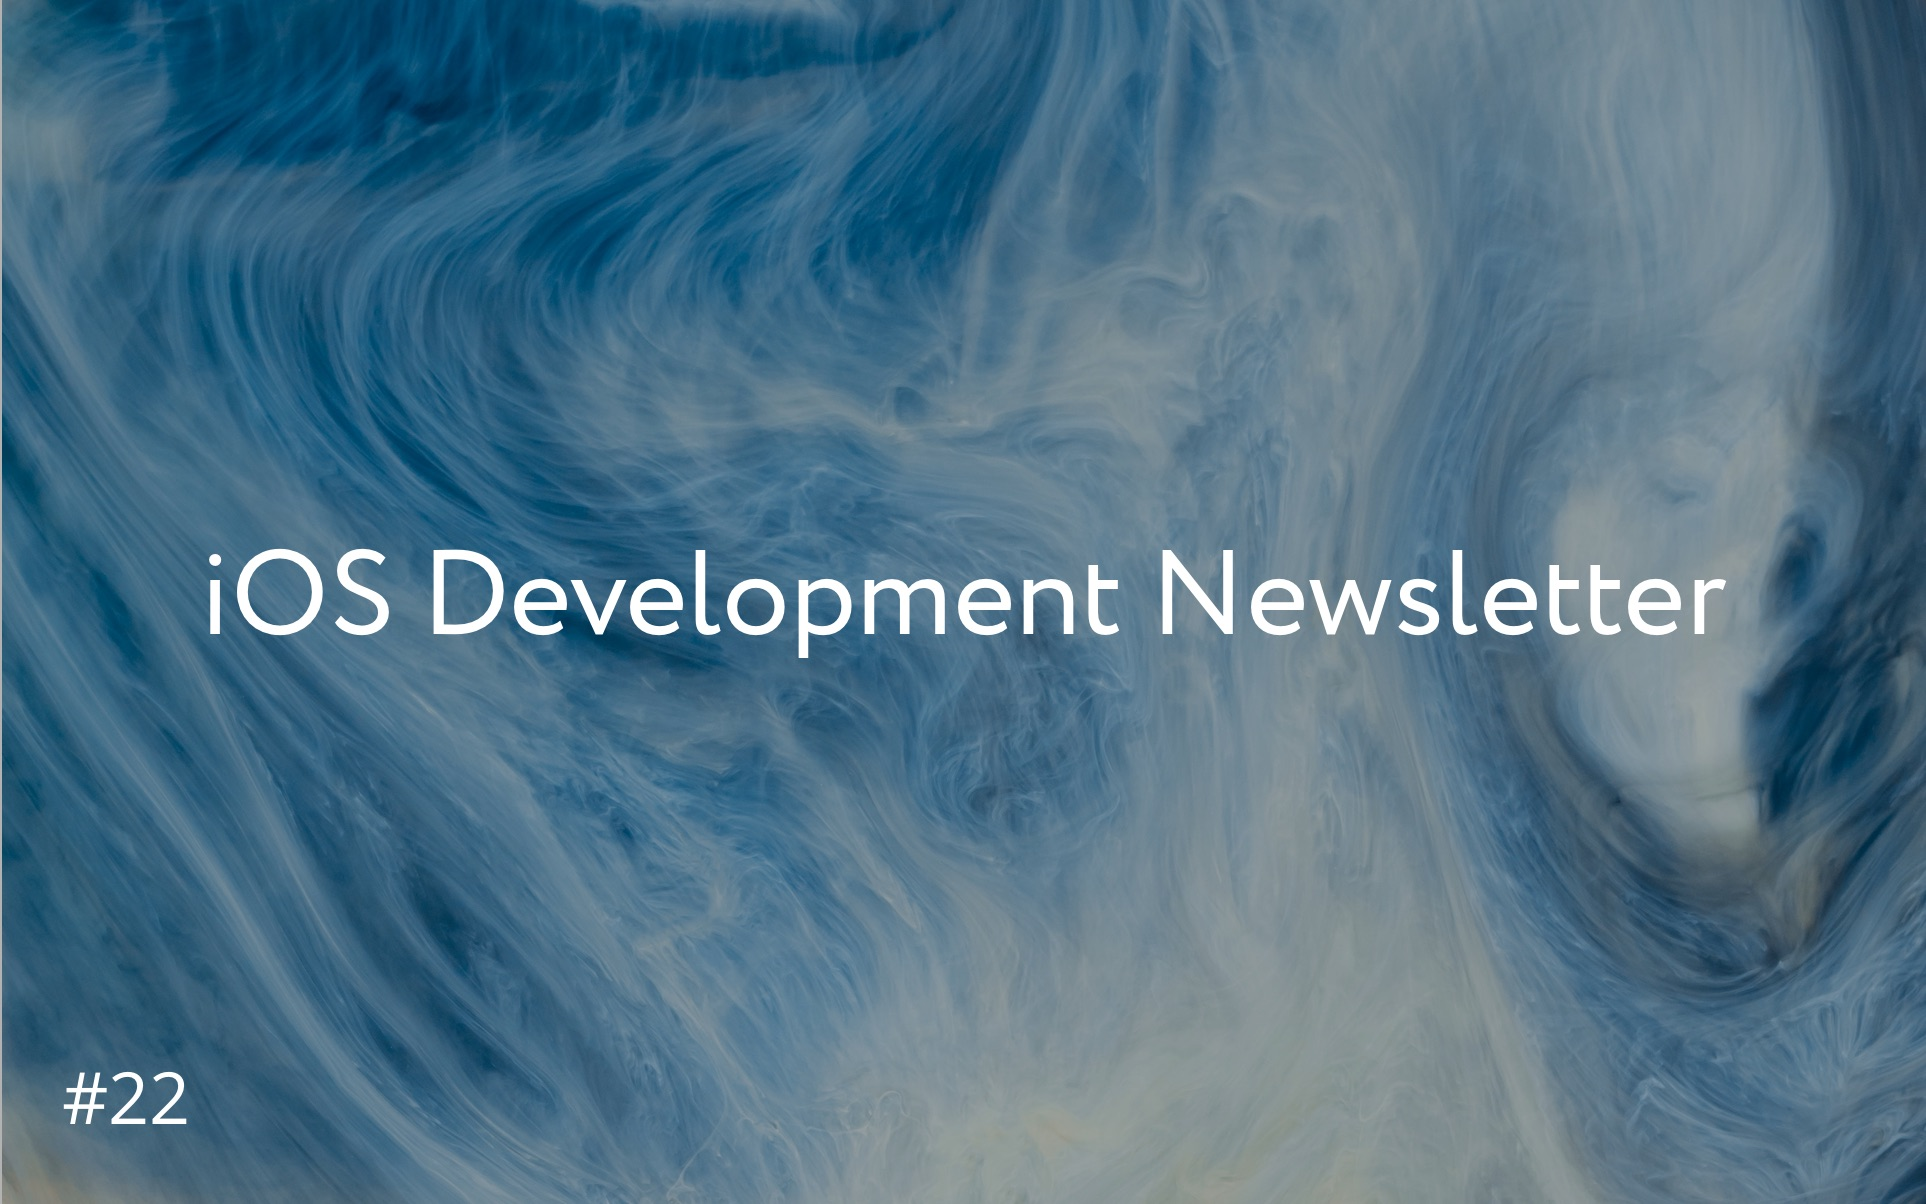 iOS Development Newsletter #22